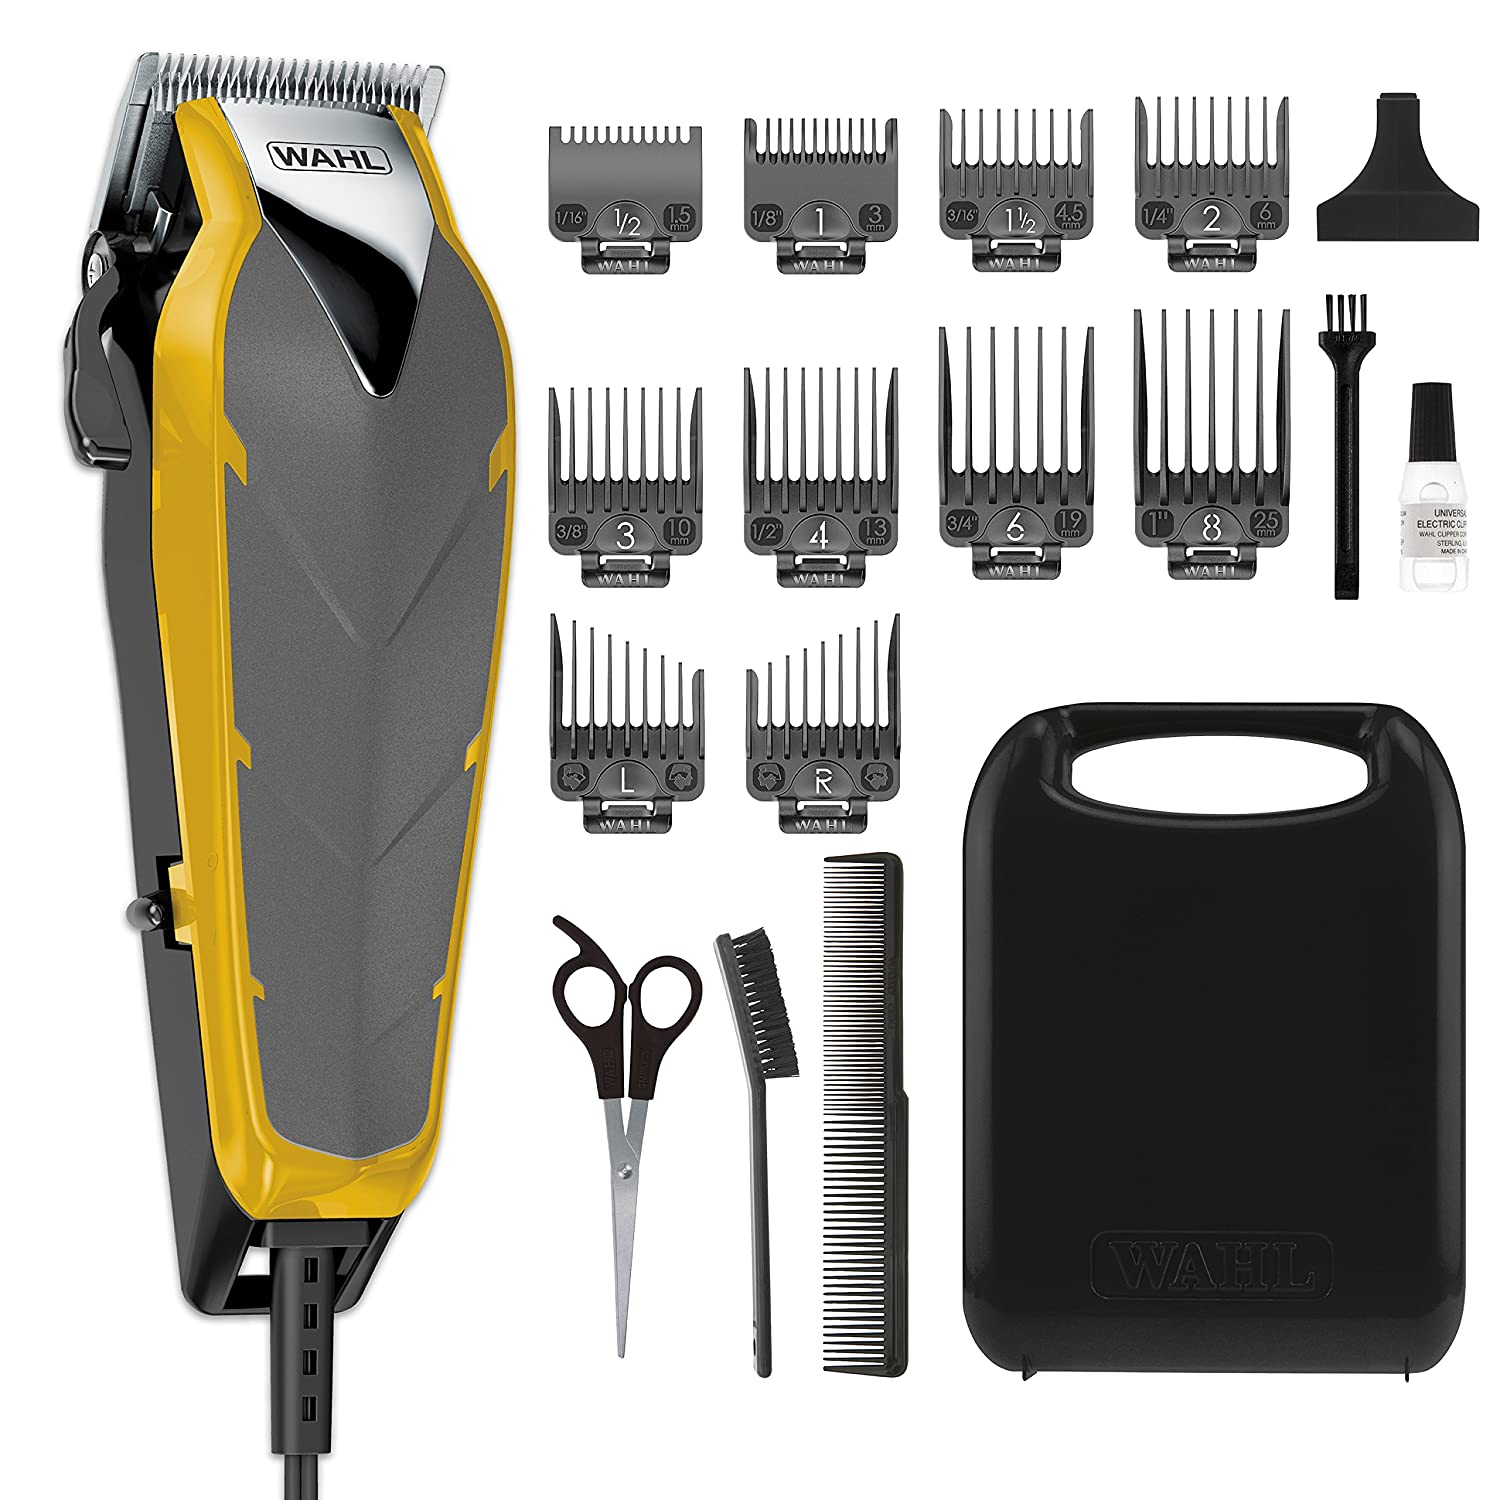 Wahl 79445 Clipper Fade Cut Haircutting Kit Trimming and Personal Grooming Kit with Adjustable Fade Level for Blending and Fade Cuts : Beauty